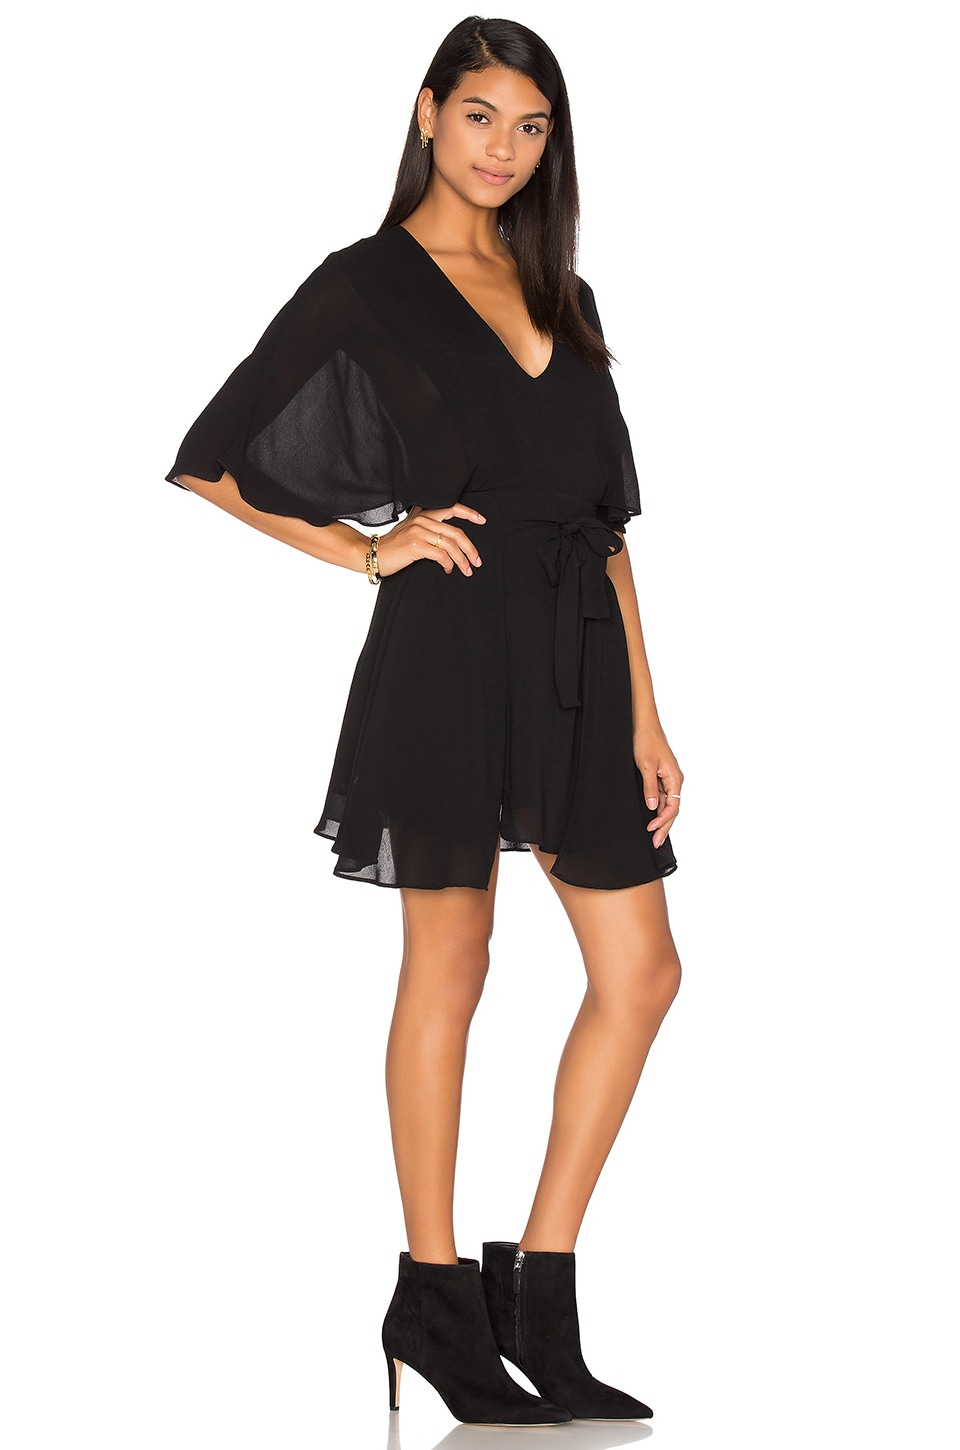 The Ray Wrap Dress by Pfeiffer